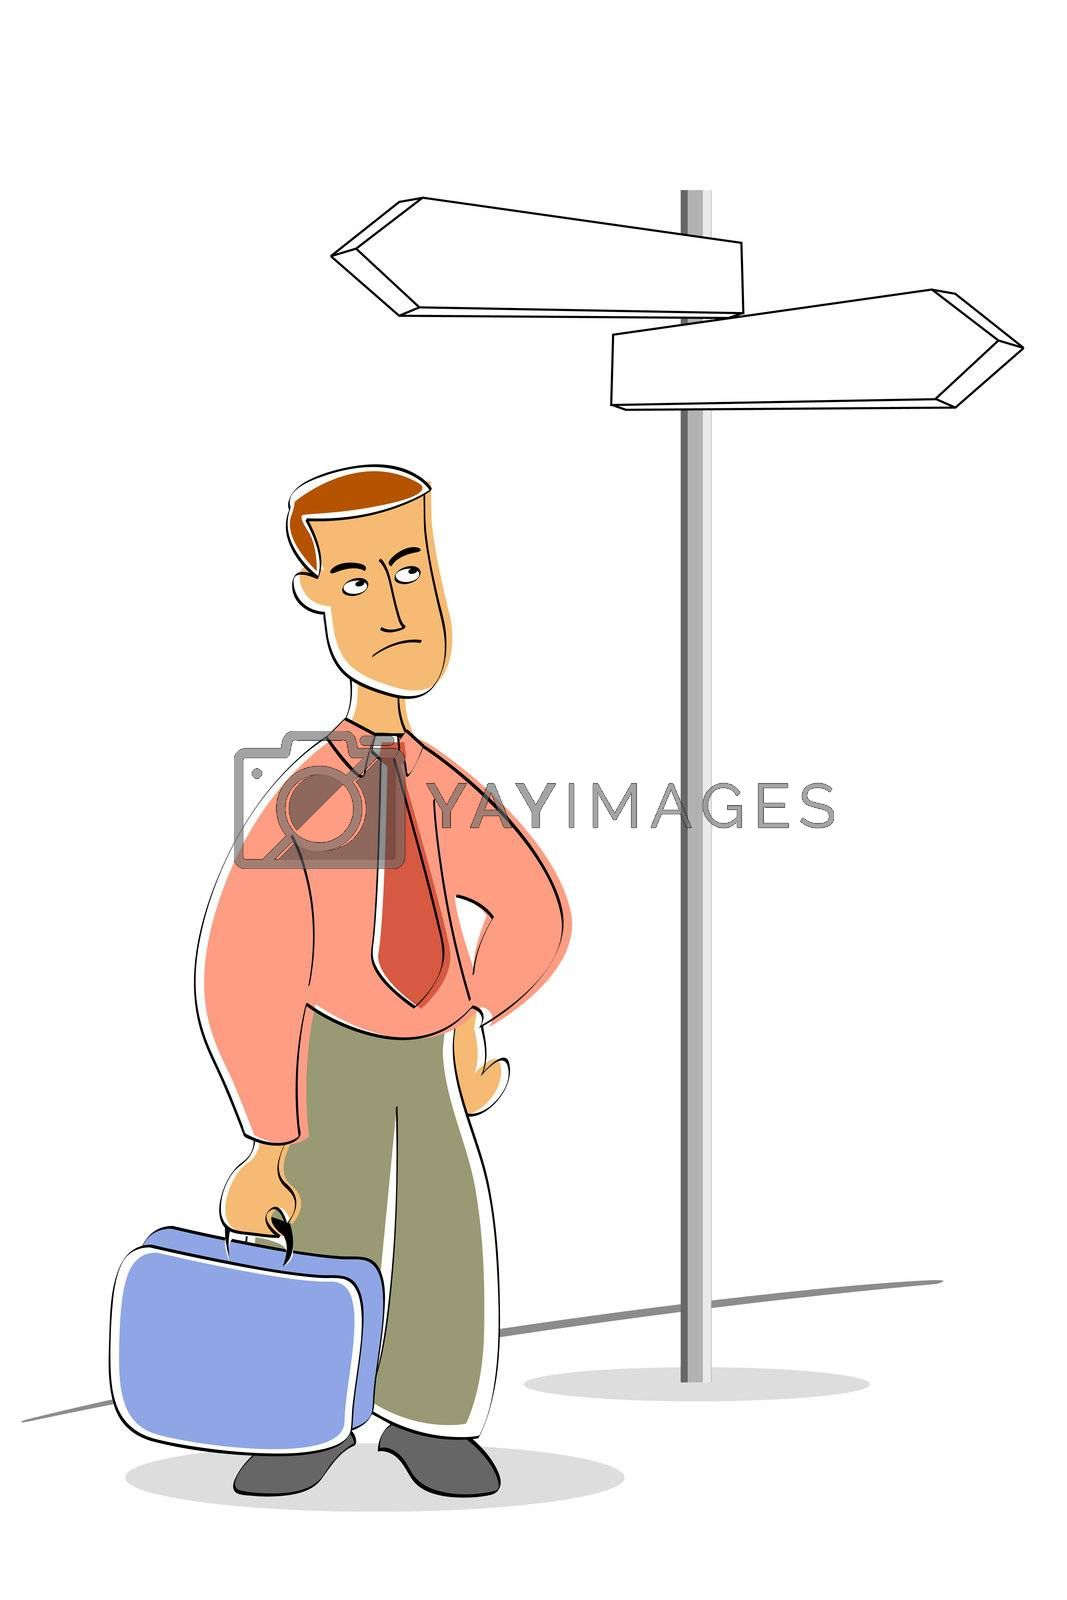 Royalty free image of business man waiting on stop by get4net